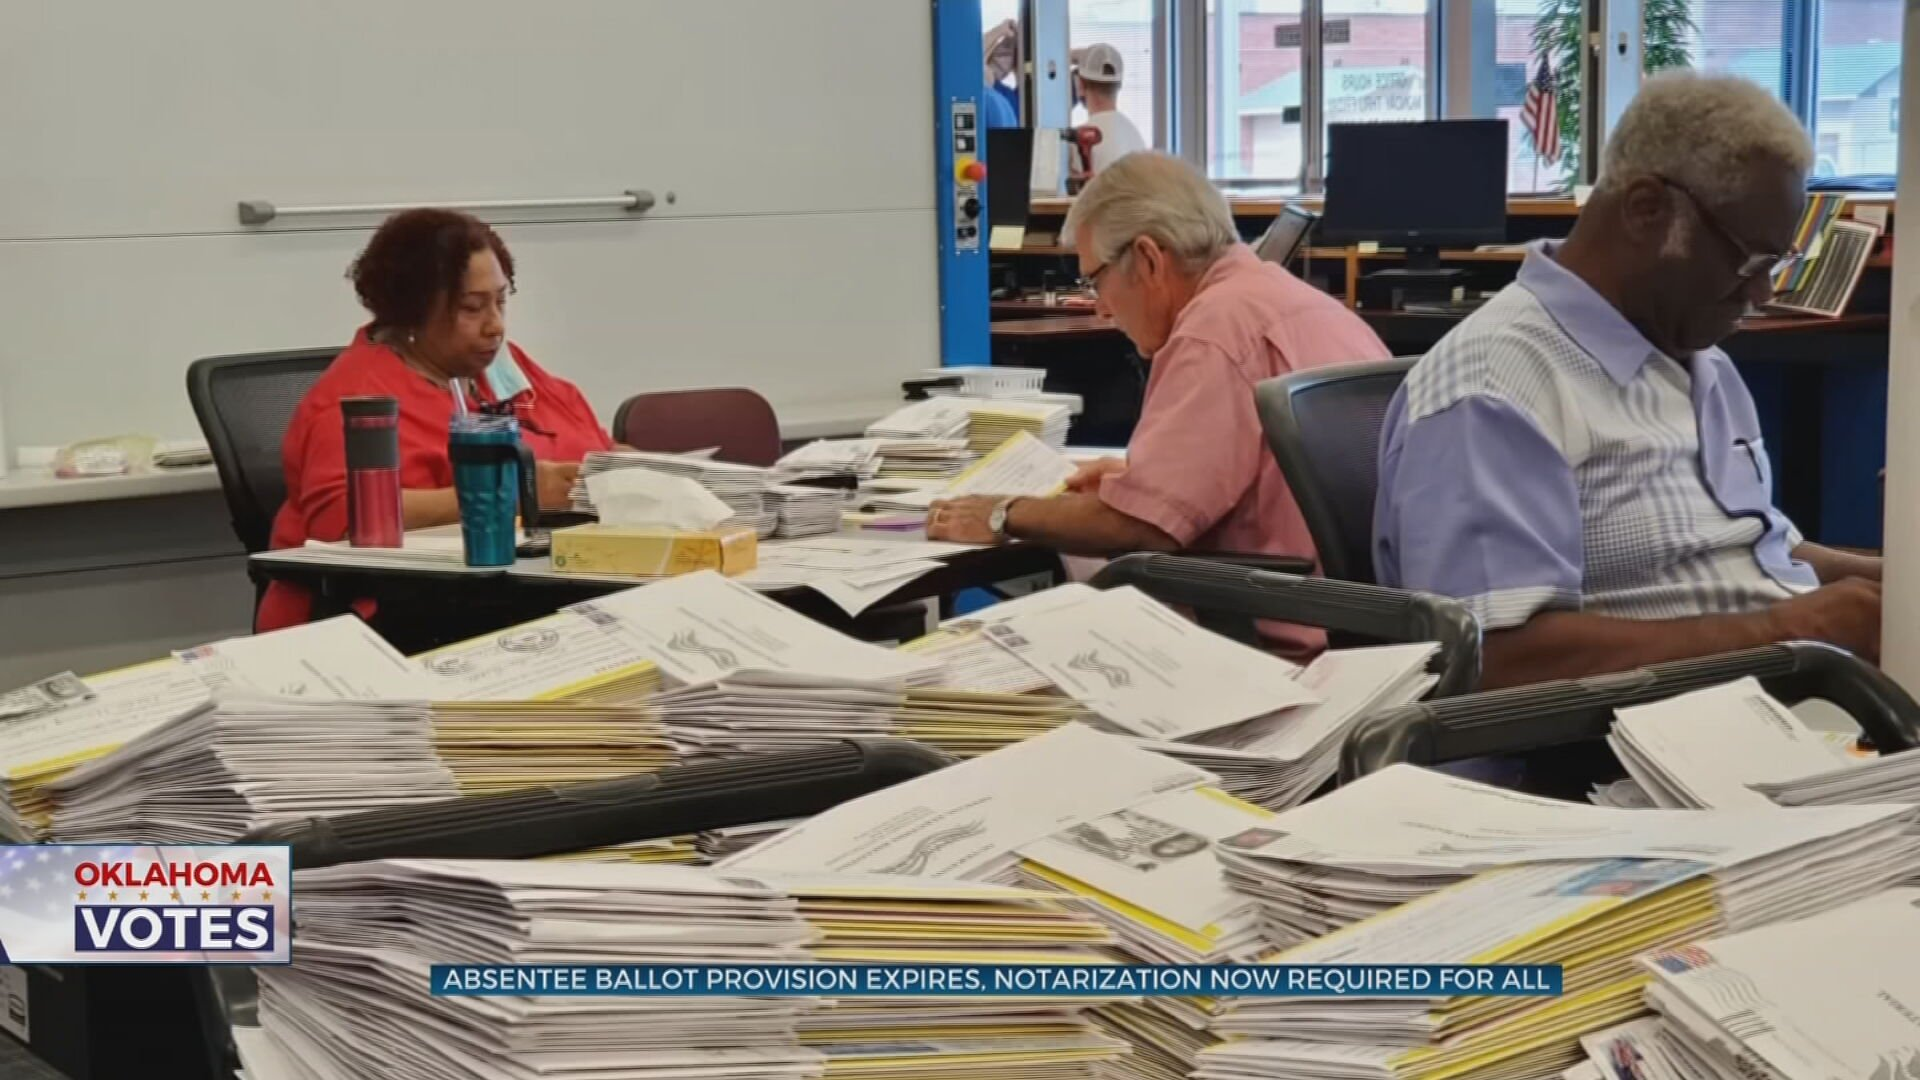 Election Provision Expires, Notarization Now Required For All Absentee Ballots